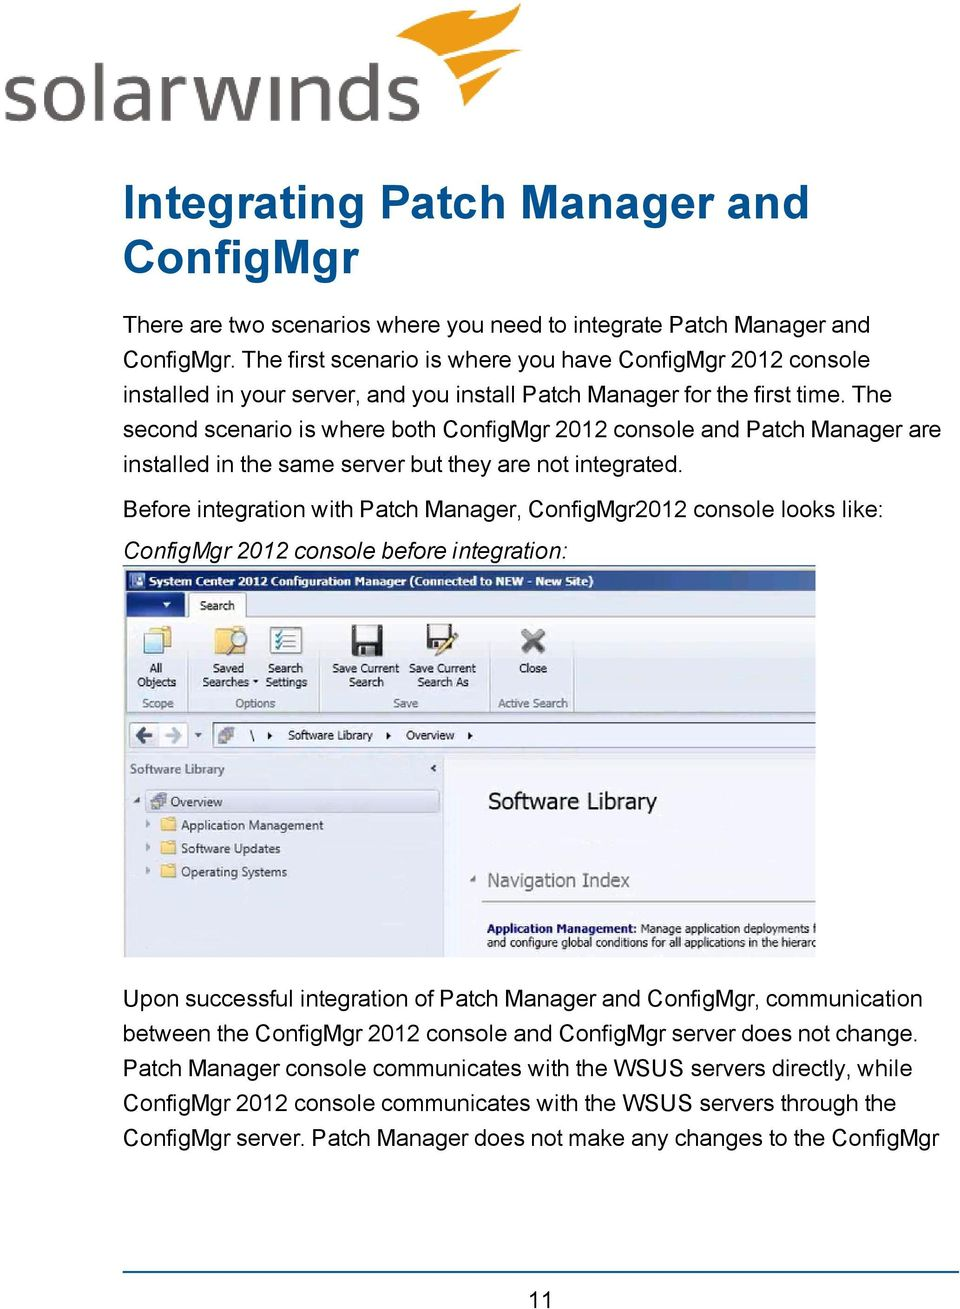 The second scenario is where both ConfigMgr 2012 console and Patch Manager are installed in the same server but they are not integrated.